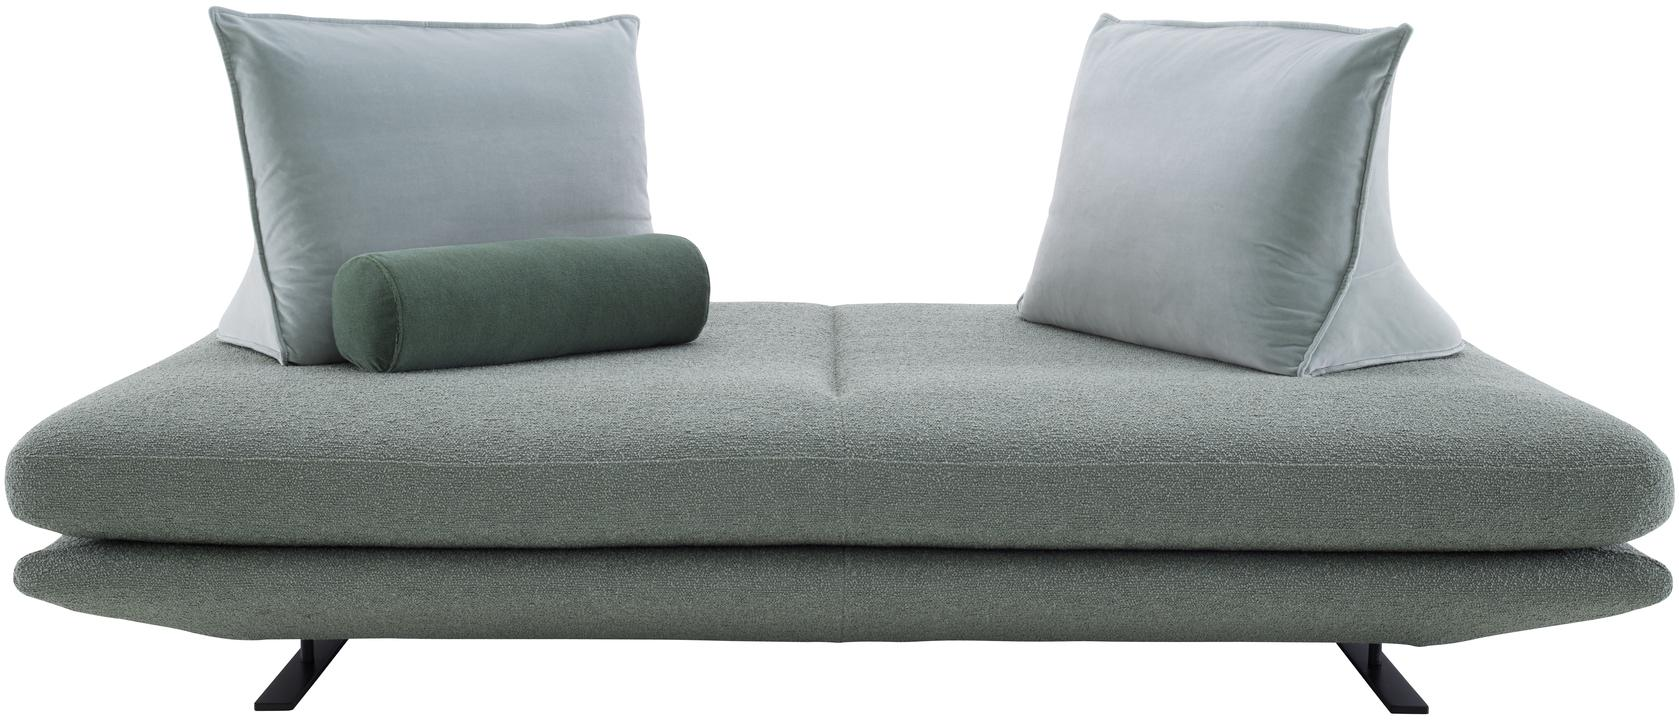 Sofa Bed For Sale Toronto Prado Sofas From Designer Christian Werner Ligne Roset